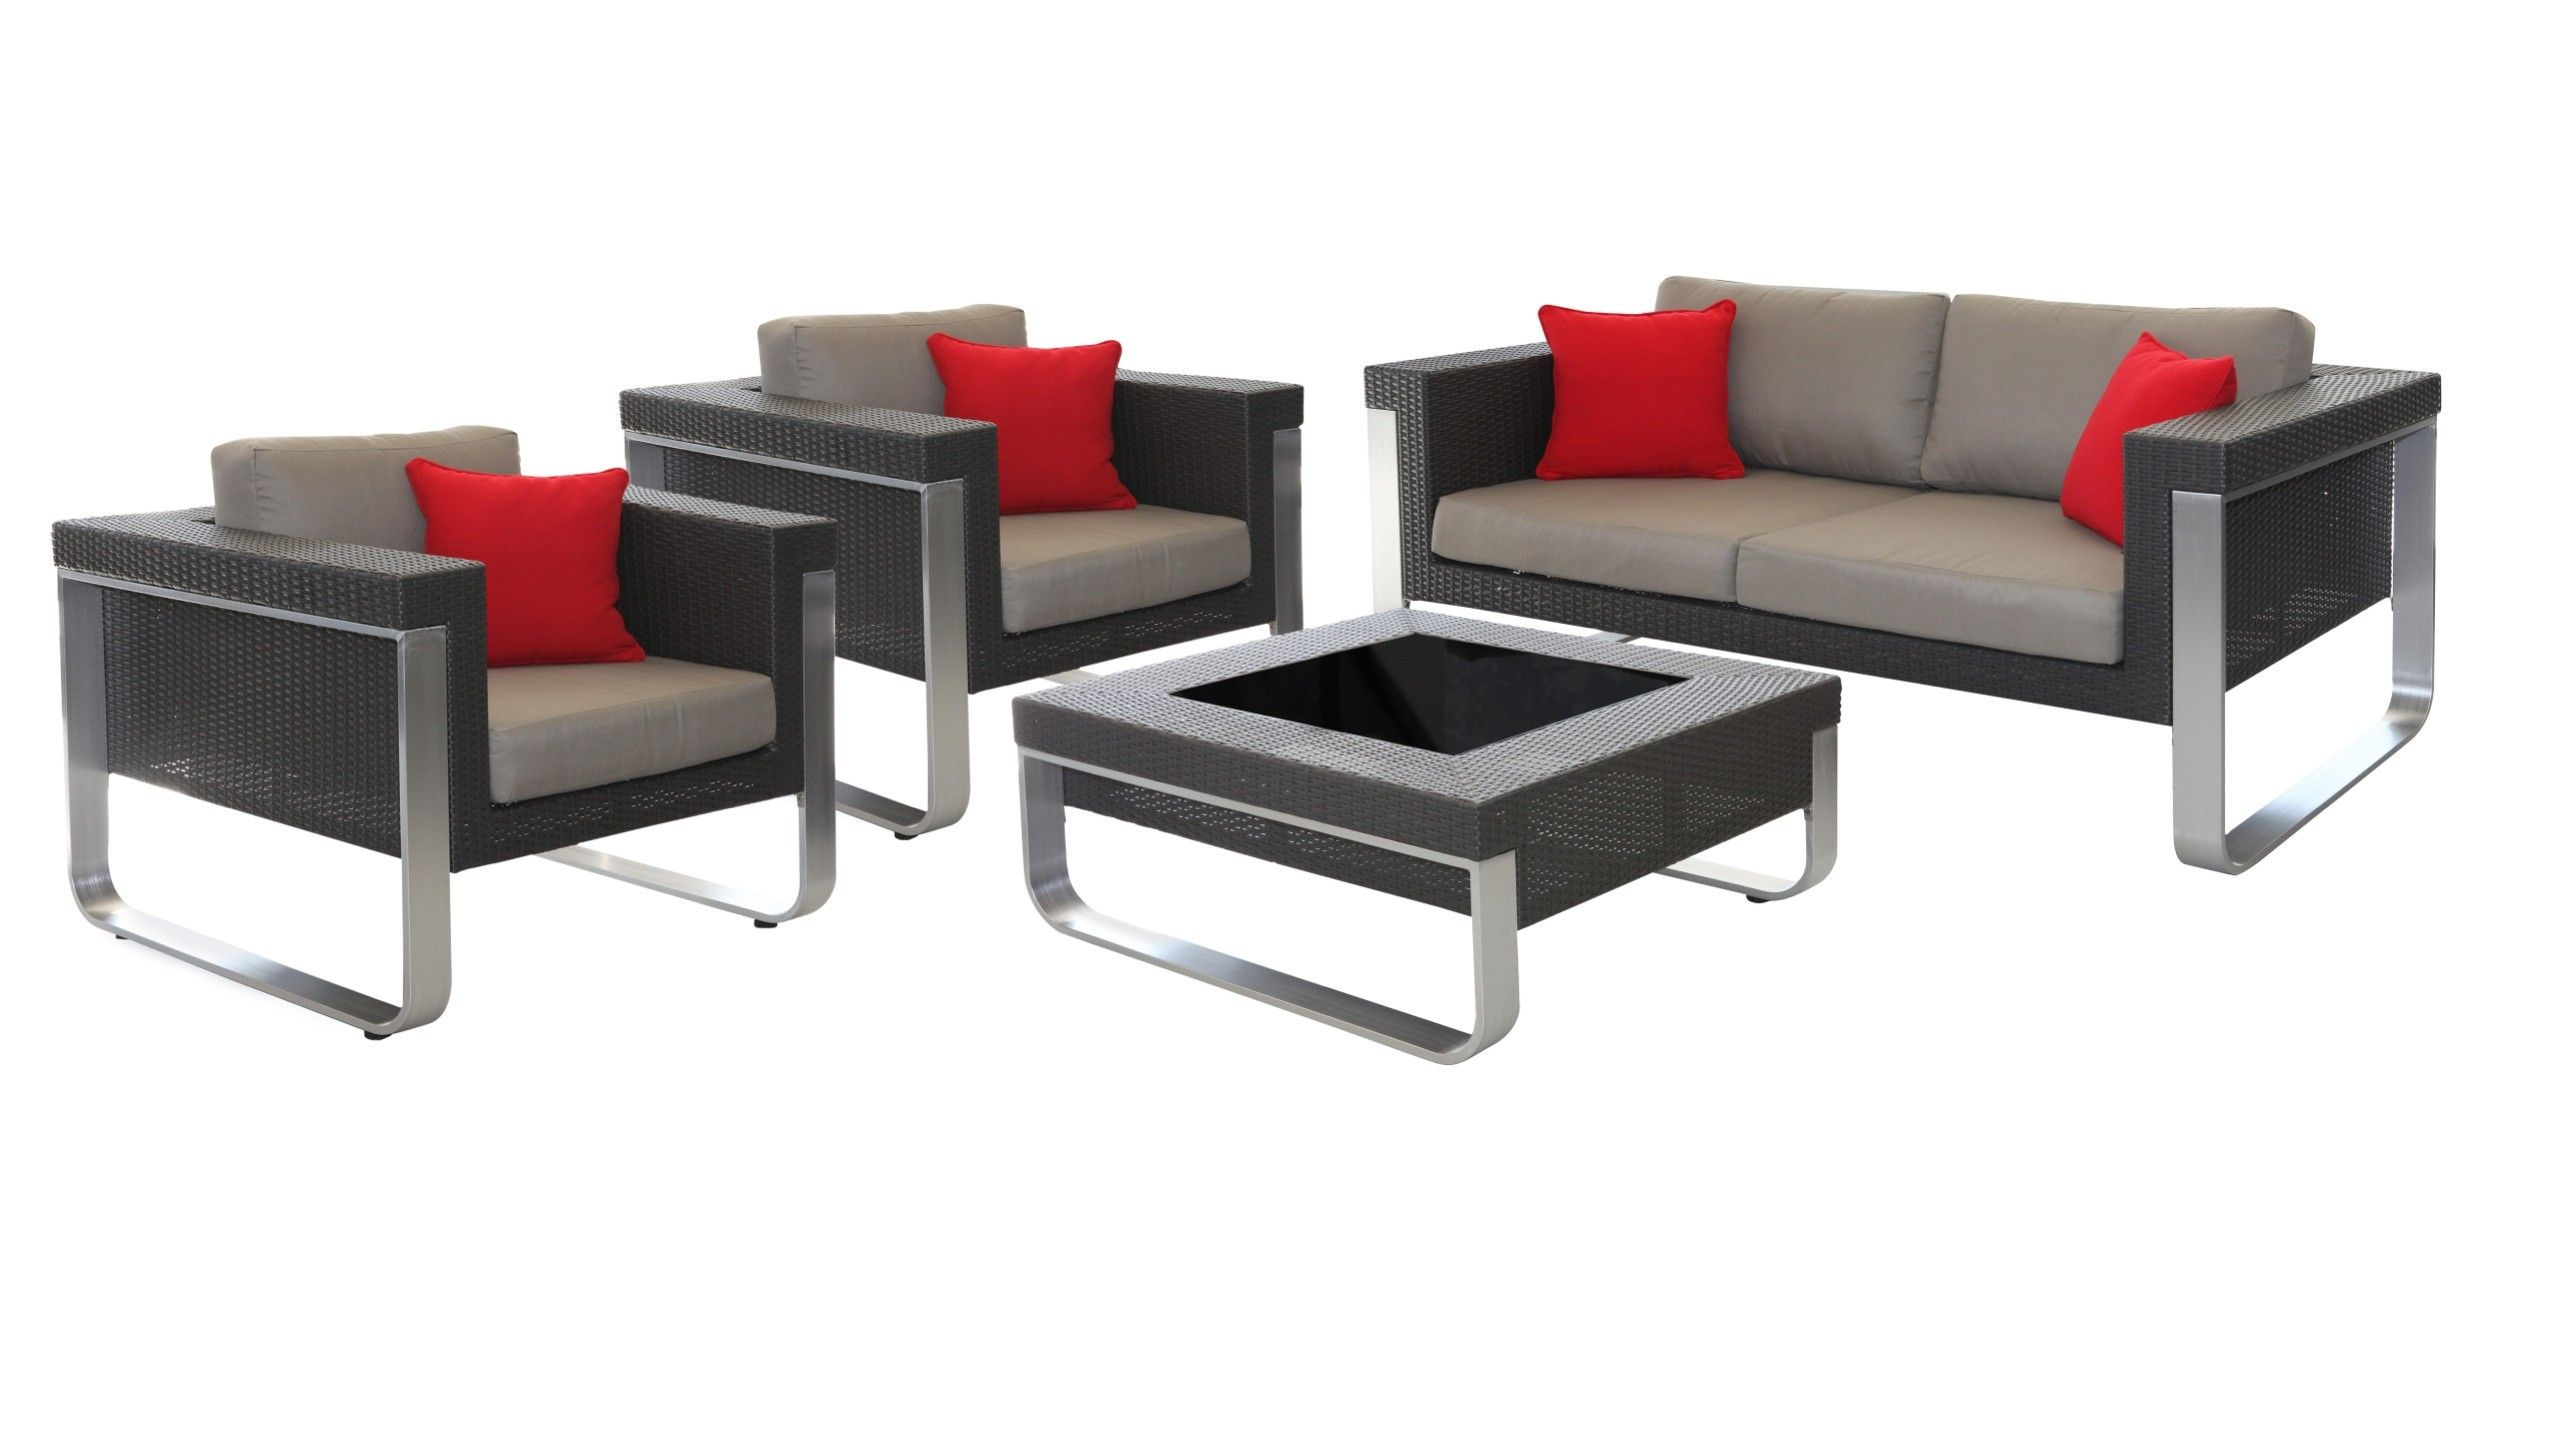 Roma  Outdoor Wicker Set 3+1+1 Seater + Tables | Outdoor Sofa | Pinterest |  Timber Flooring, Outdoor Sofa And Outdoor Lounge